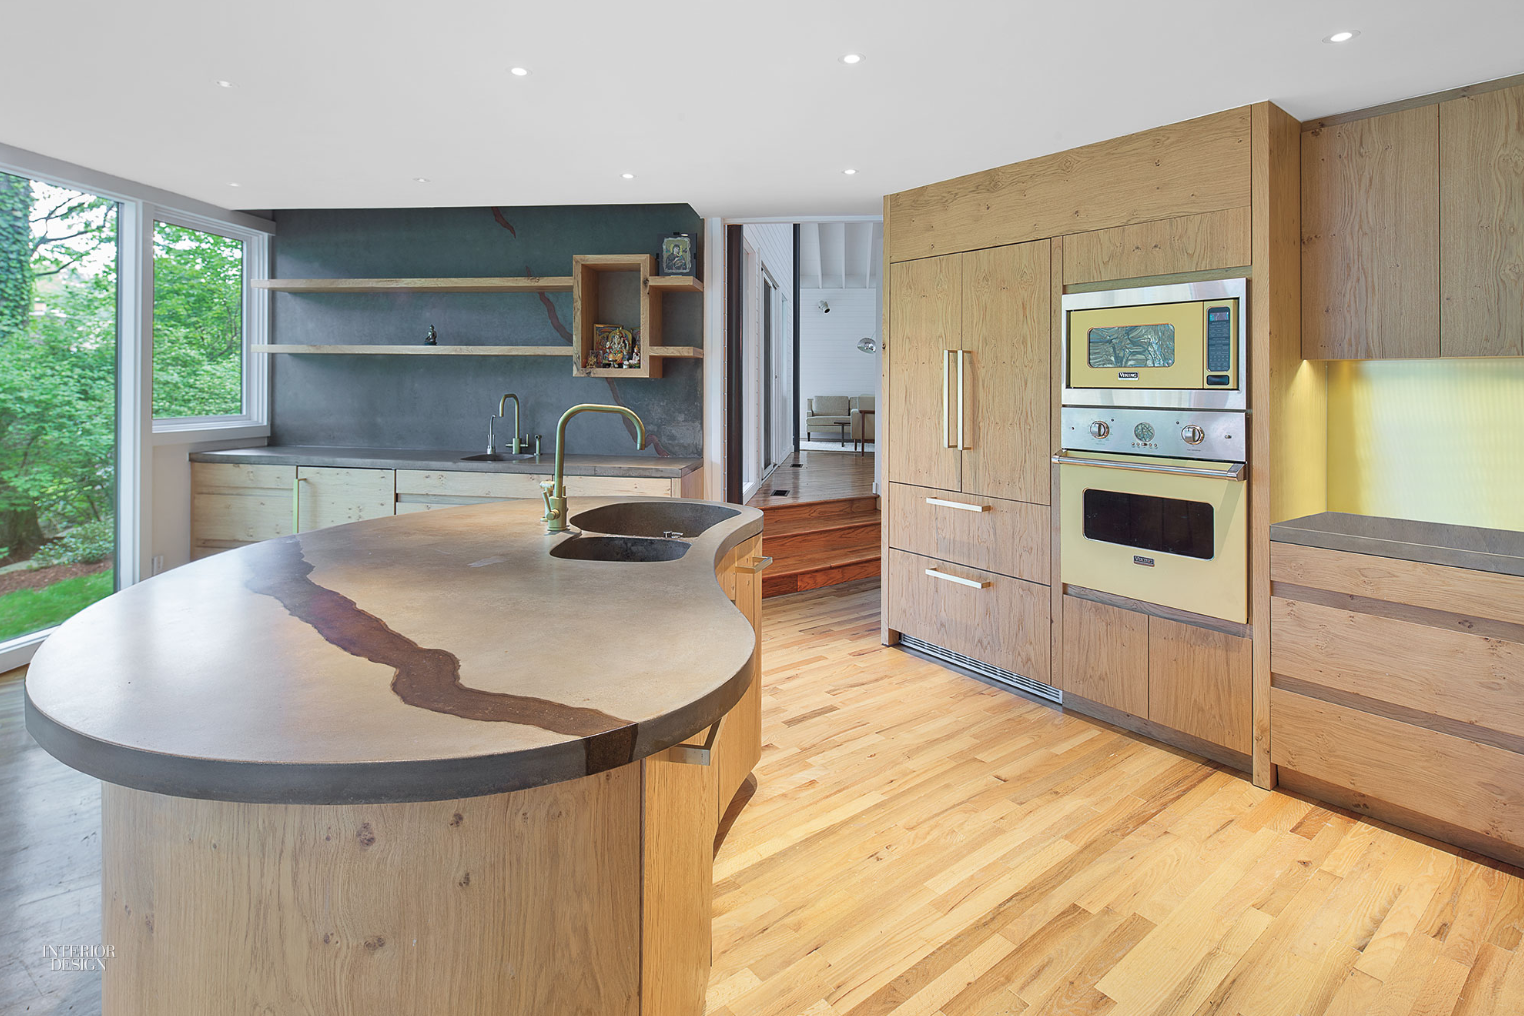 Interior Design -  7 Simply Amazing Kitchen Islands